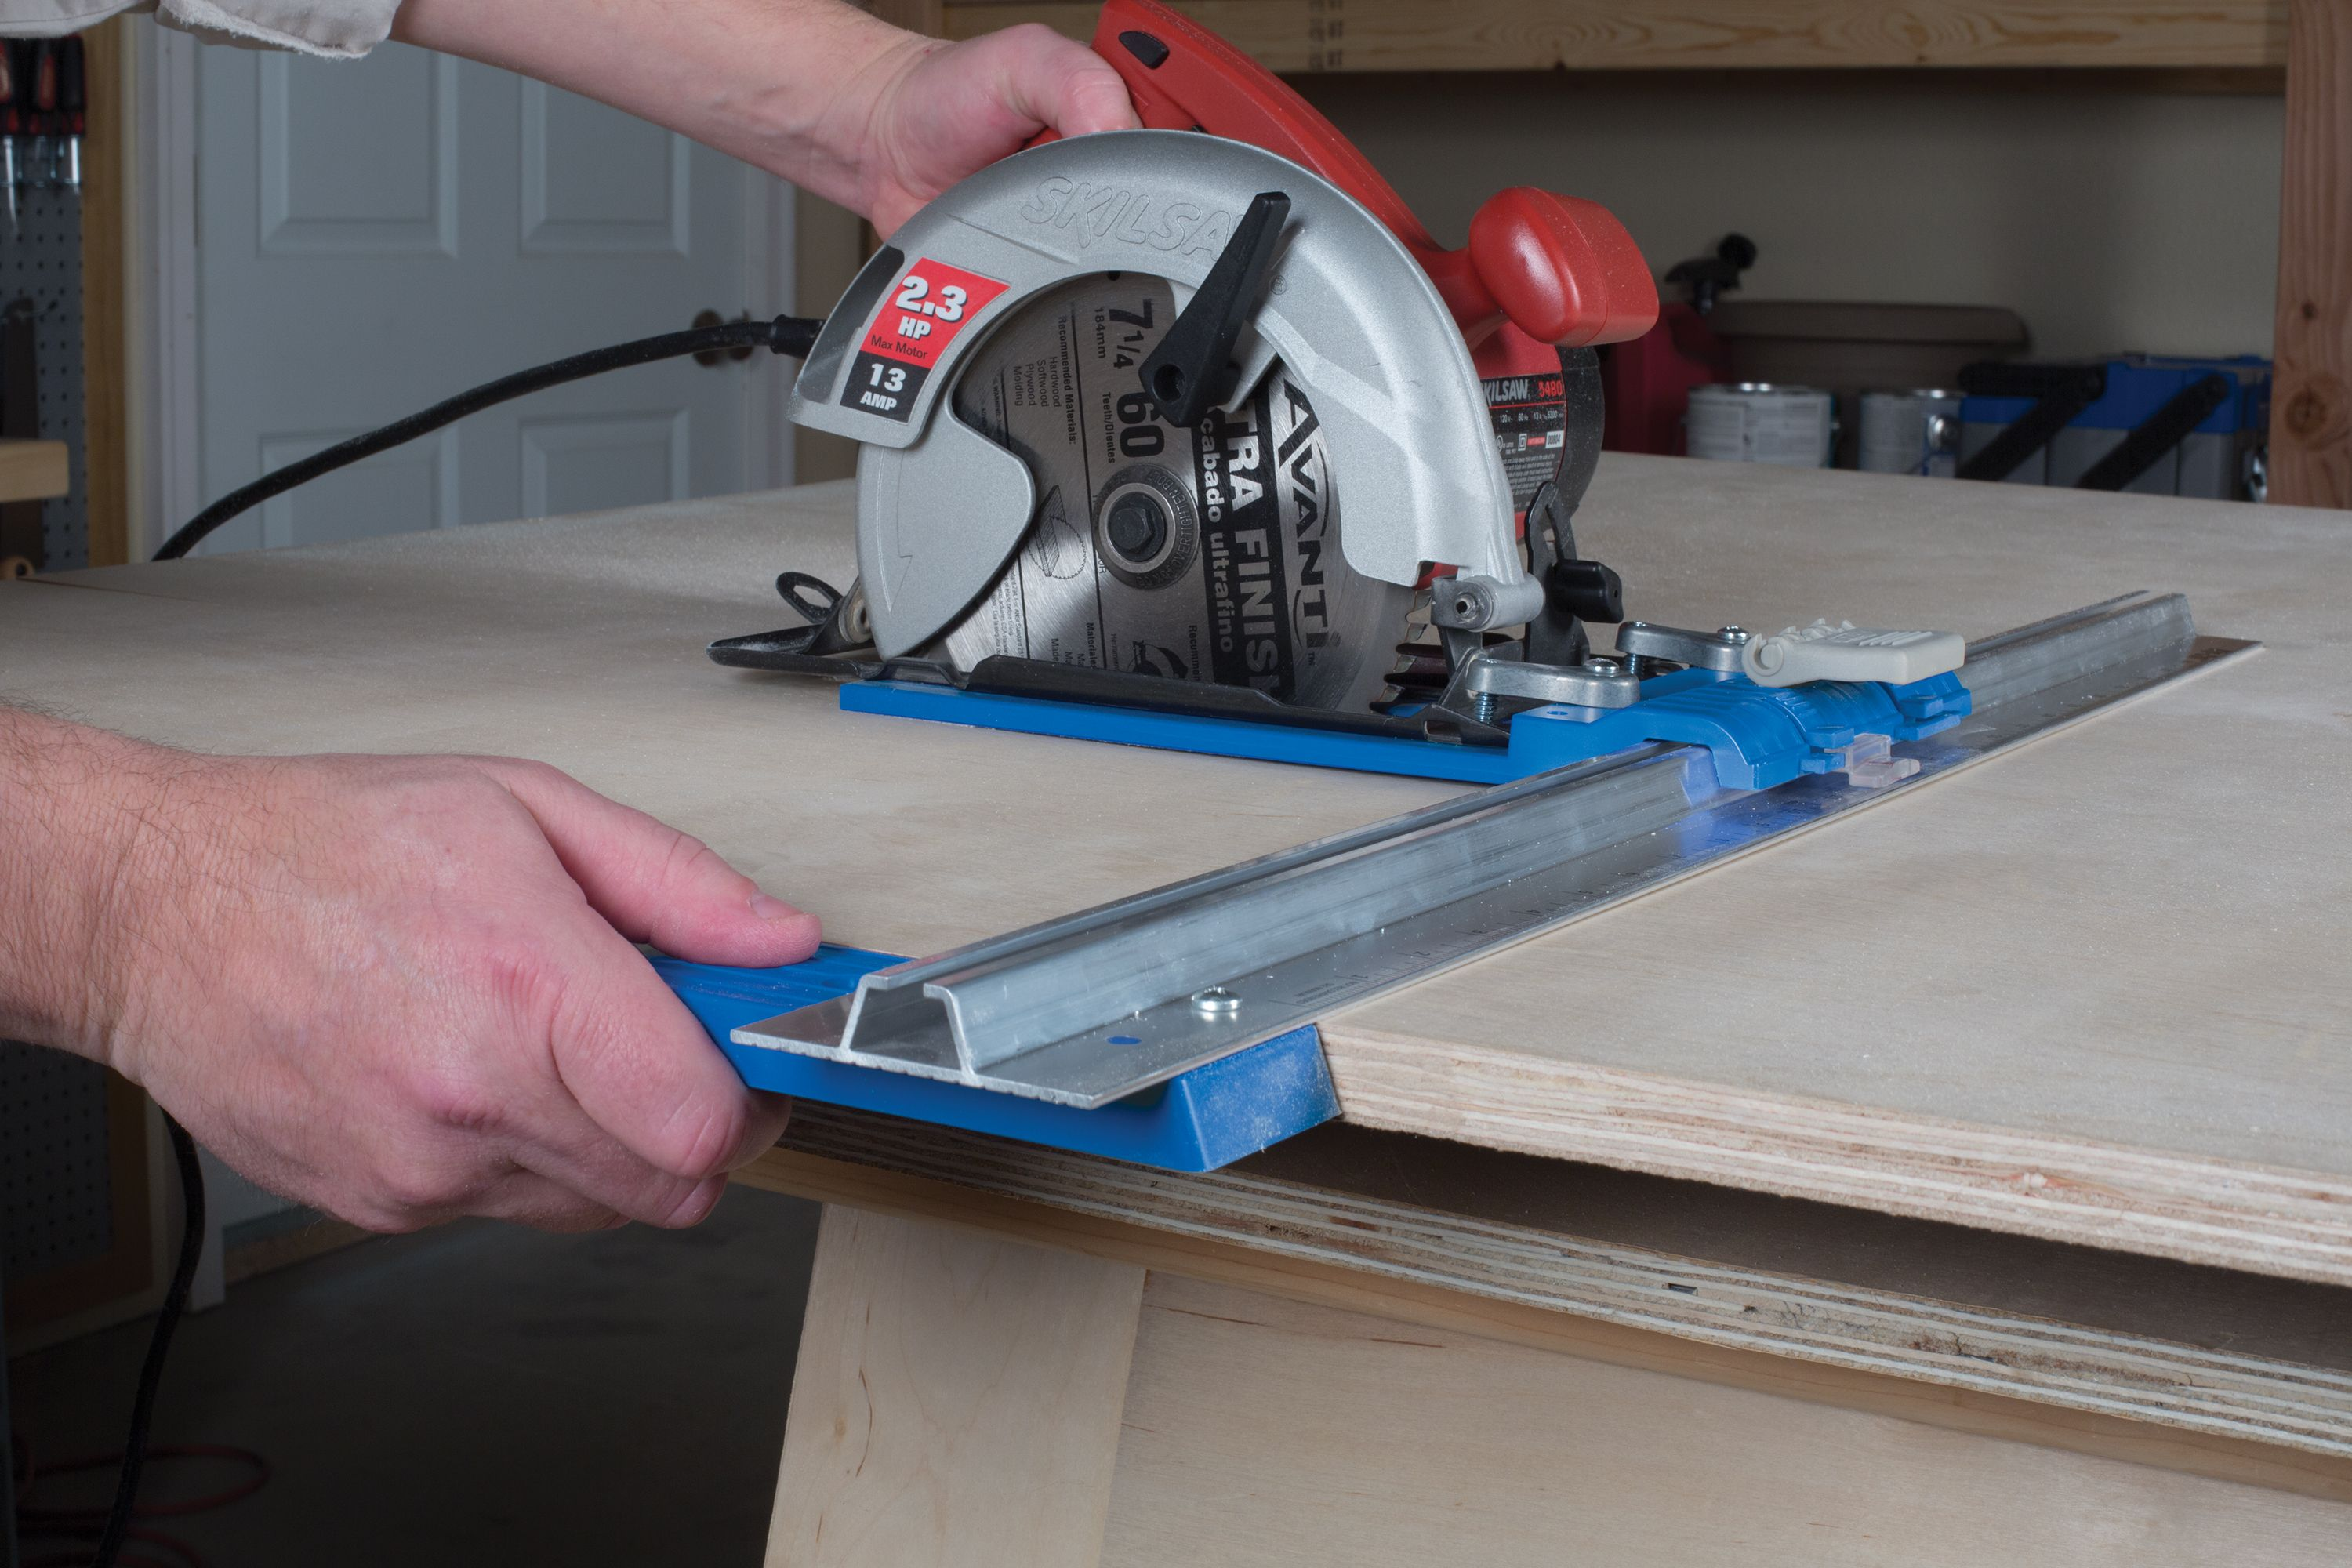 """5 simple steps for smooth, successful cuts: 1) Turn on your saw and let the blade get to full speed before it contacts your material. 2) Give the blade time to cut, and don't """"force"""" the saw forward. 3) Guide the saw with your dominant hand, and keep your eye on where the saw is going. 4) Support the sheet well so that it won't move as you cut, and so that none of your parts fall. 5) Maintain control of your saw throughout the entire cut, making sure the saw doesn't bind or kick back."""